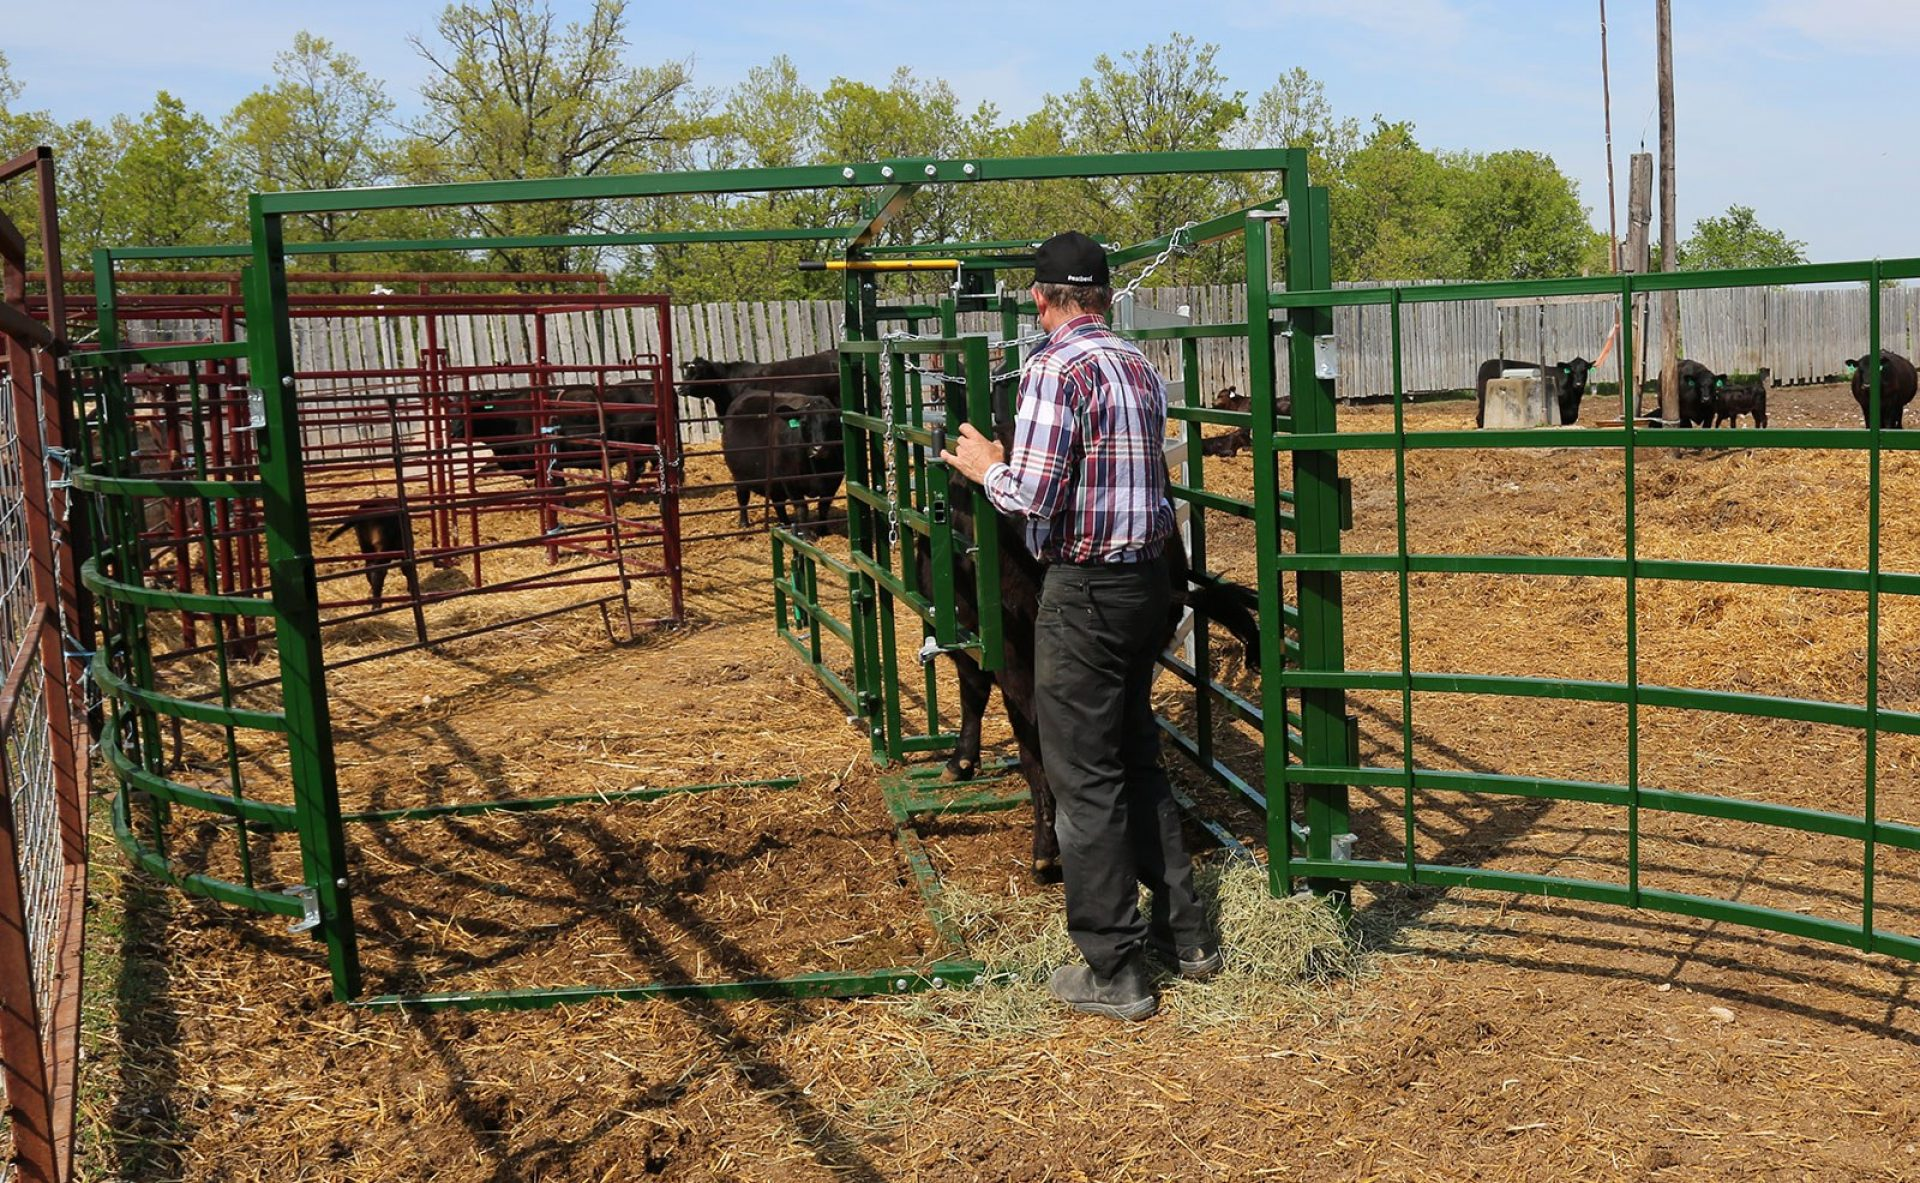 Cattle Maternity Pen with rancher working a cow through the back access gate